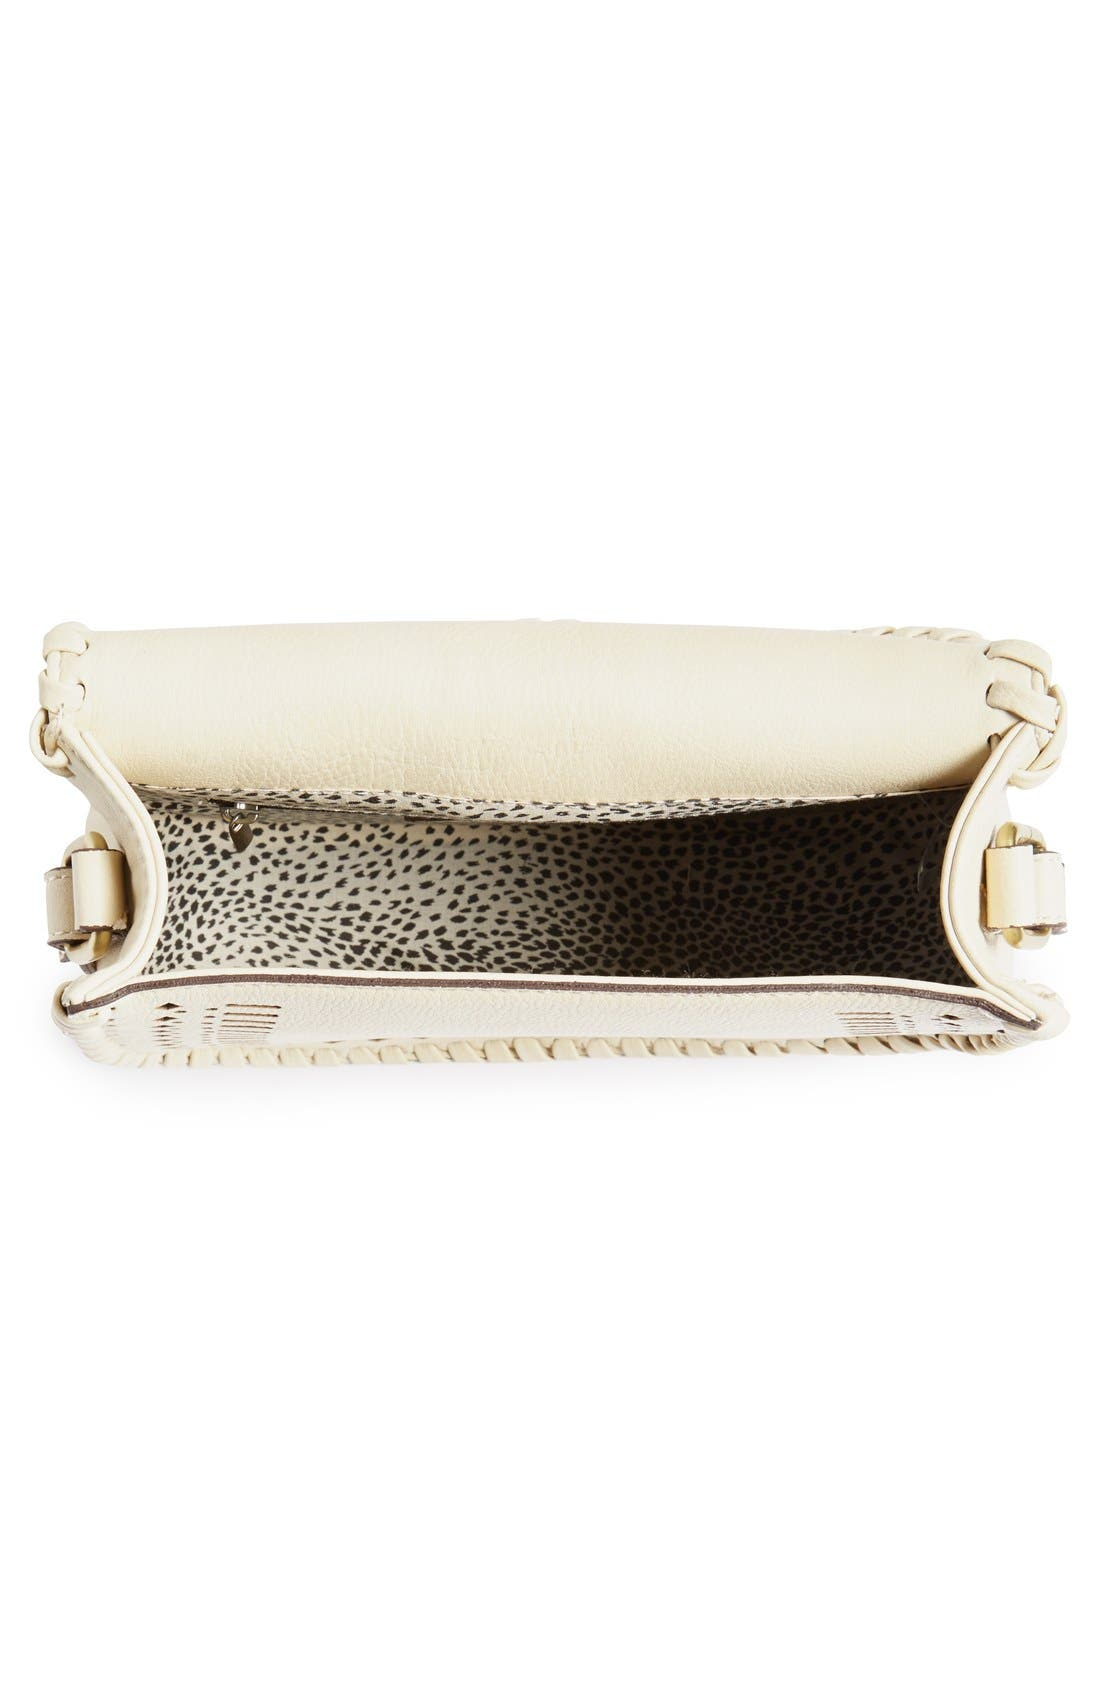 'Kianna' Perforated Faux Leather Crossbody Bag,                             Alternate thumbnail 4, color,                             IVORY